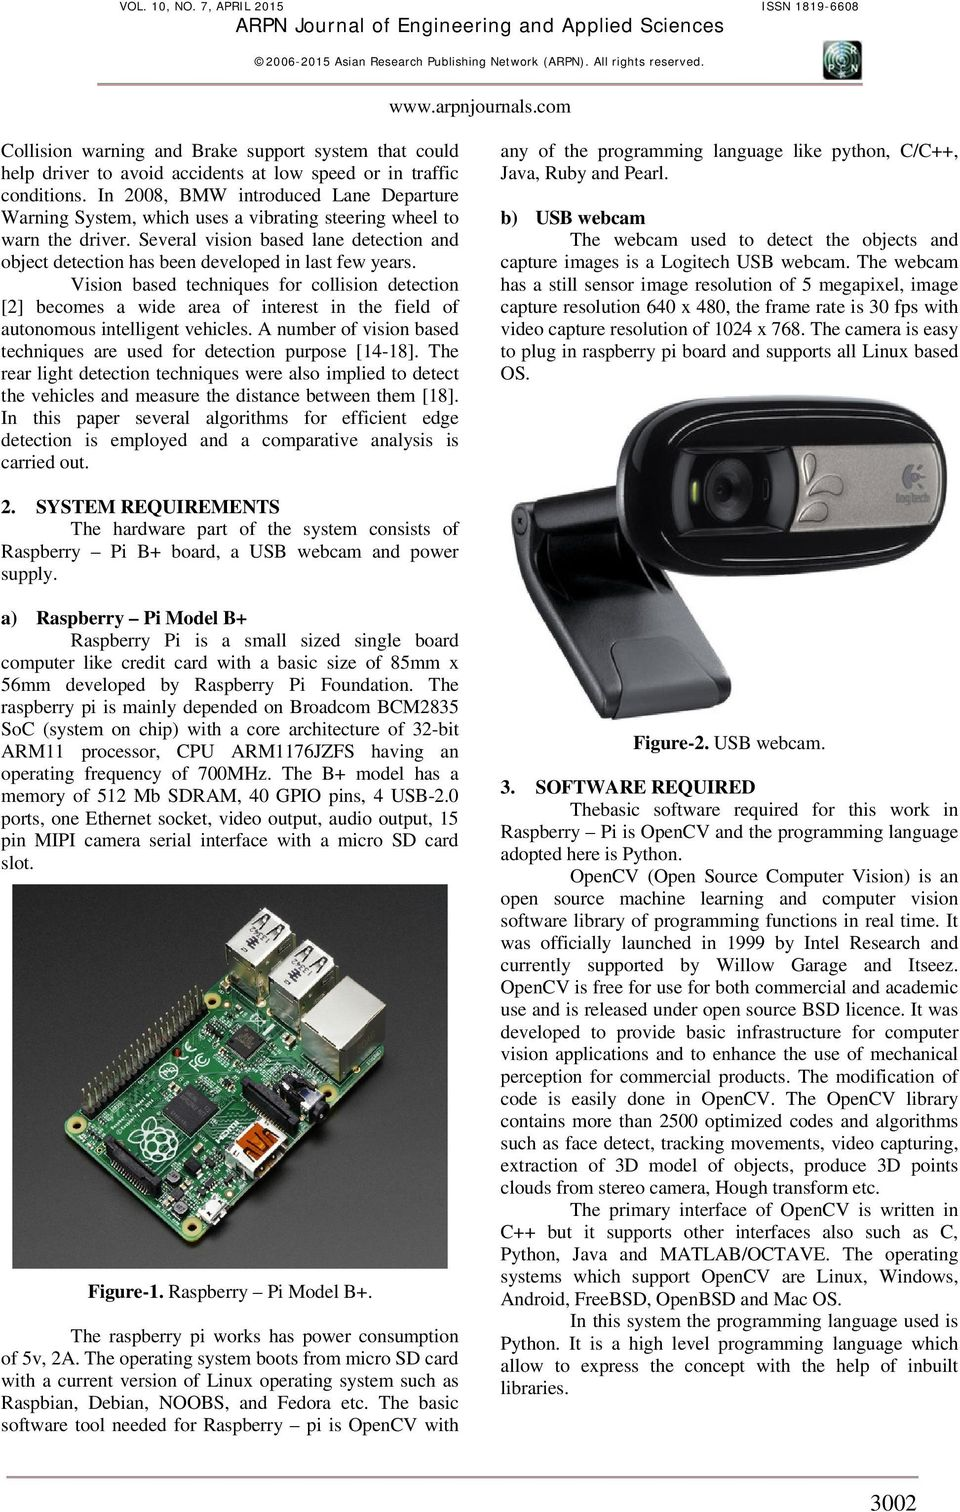 RASPBERRY PI BASED COST EFFECTIVE VEHICLE COLLISION AVOIDANCE SYSTEM